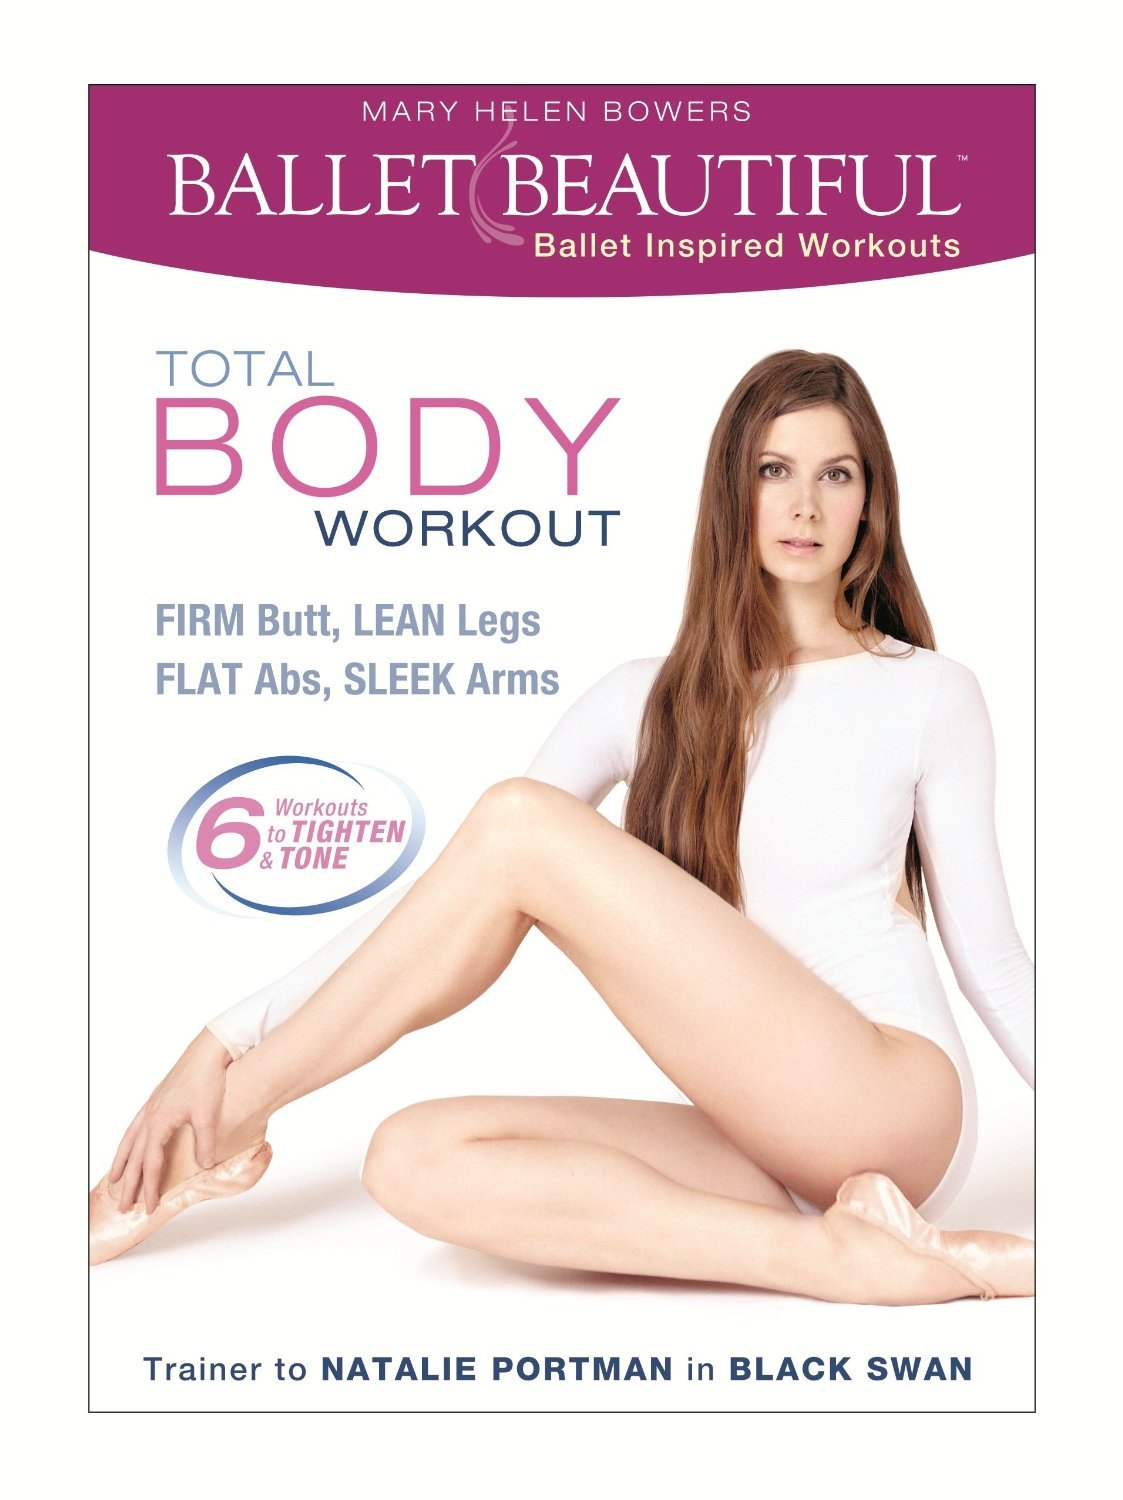 Ballet Beautiful Results Case Study